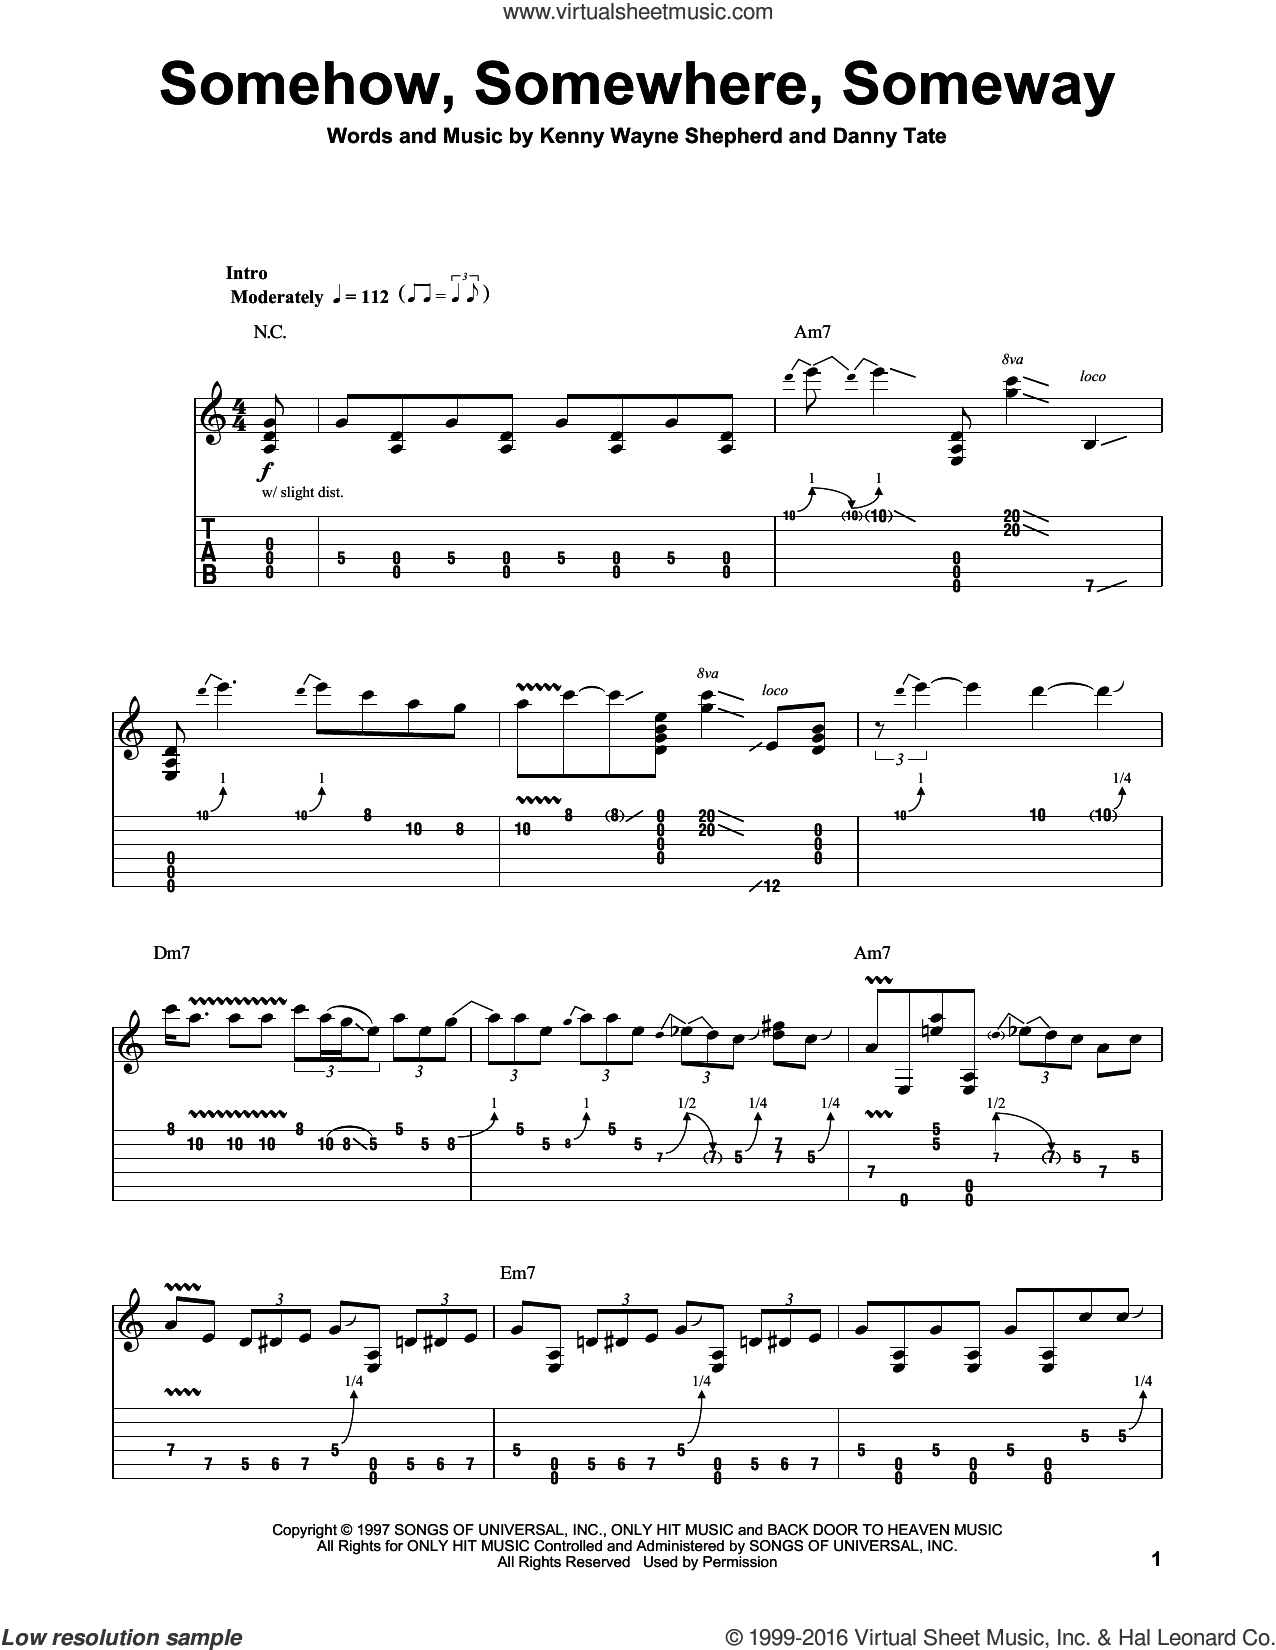 Somehow, Somewhere, Someway sheet music for guitar (tablature, play-along) by Danny Tate and Kenny Wayne Shepherd. Score Image Preview.